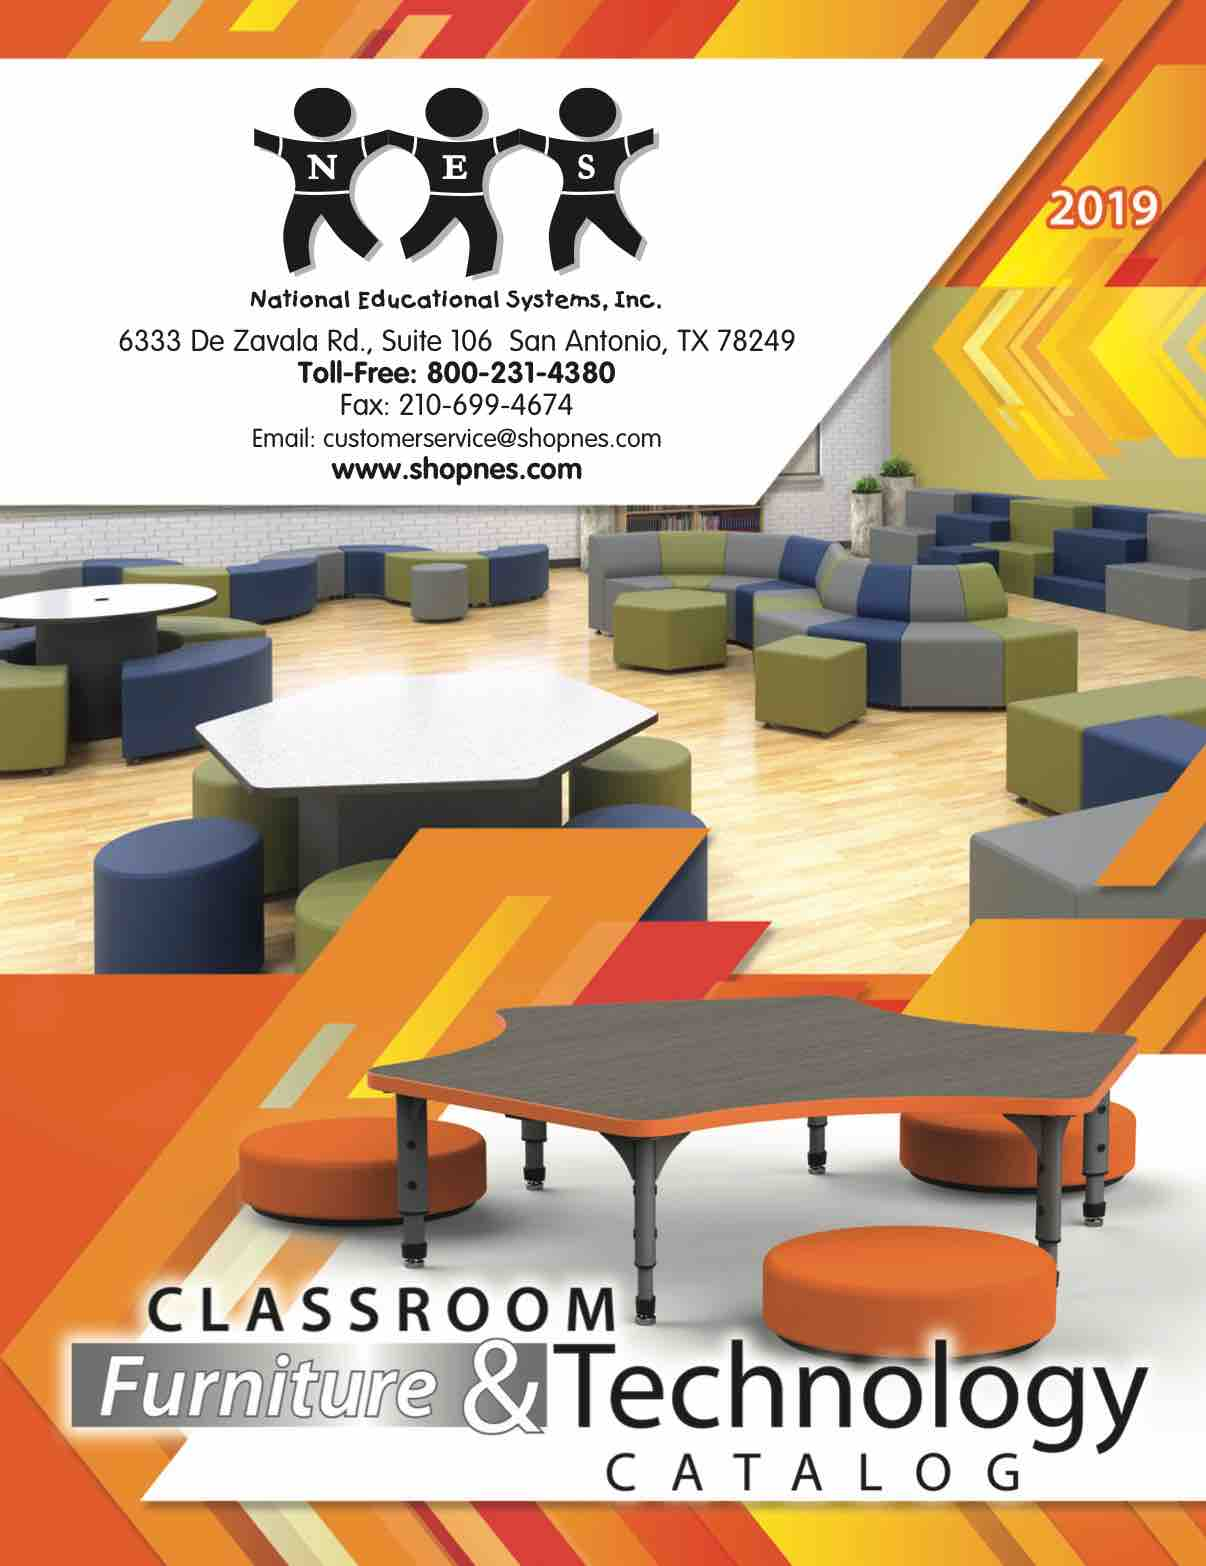 2019 NES Furniture & Technology Catalog